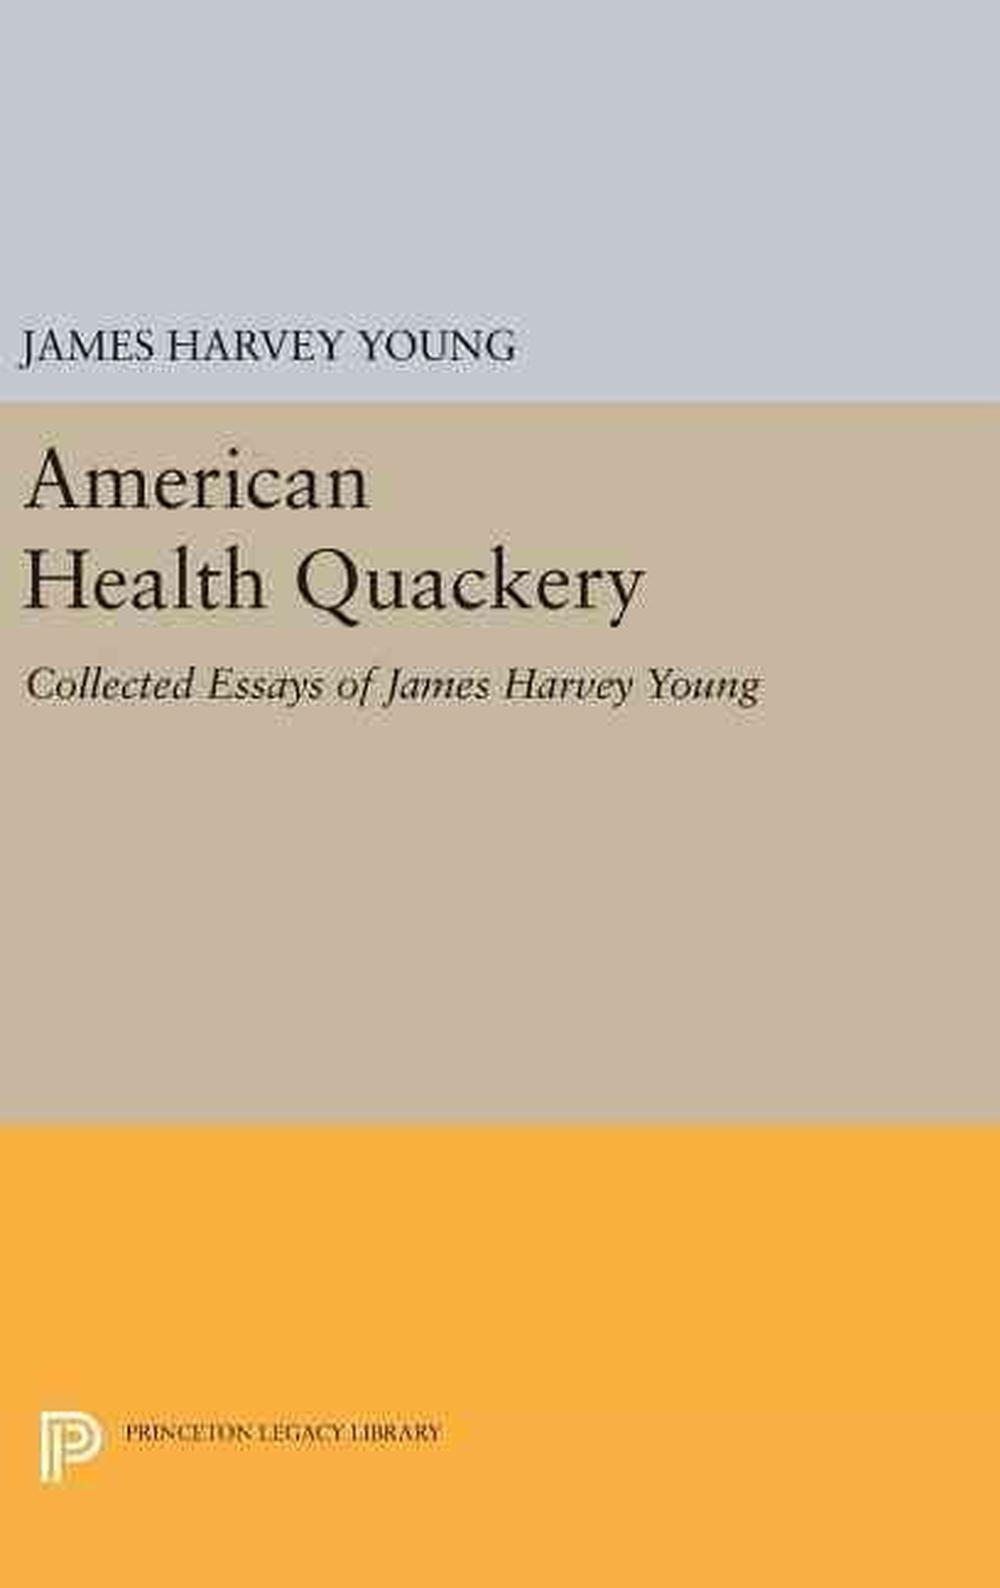 """quackery is nothing short of fraud 10 louis xiv and the royal touch there's a lot of pressure and responsibility that goes along with being the monarch, and quite a few monarchs have been said to possess the """"royal touch"""" and the capability to heal illnesses—especially scrofula, a type of tuberculosis."""